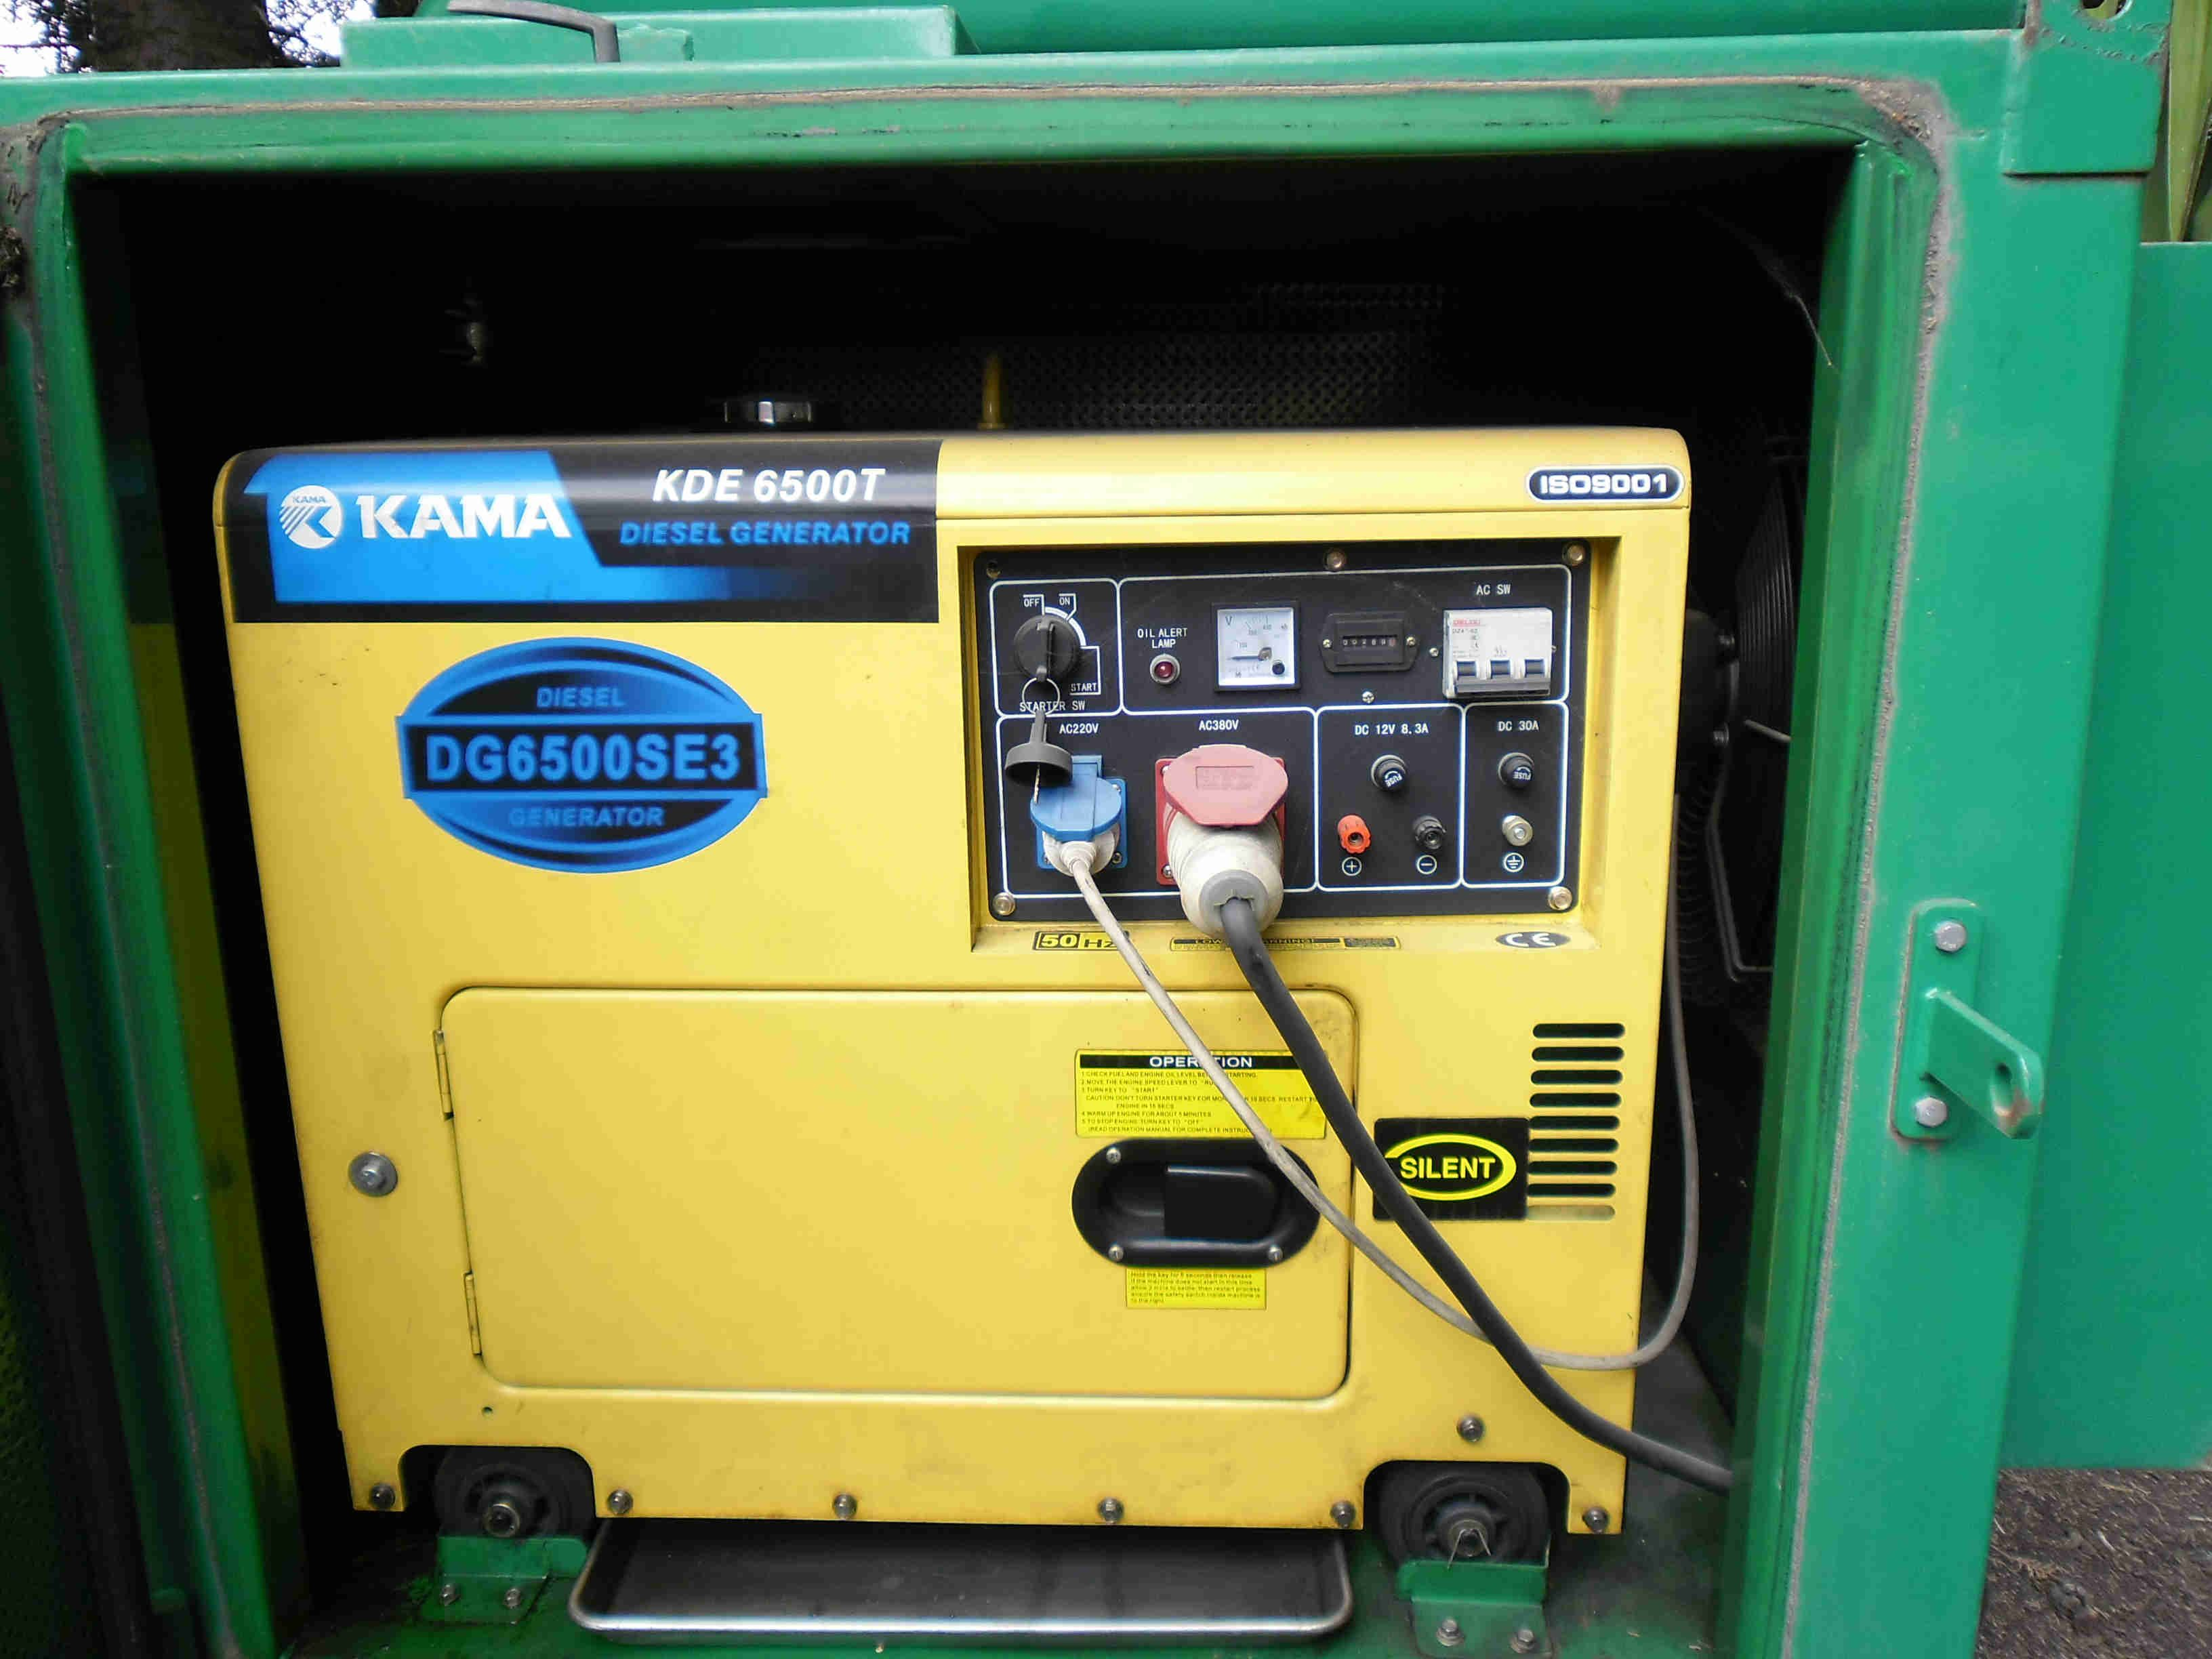 How To Take Out The Engine Alternator Assembly Of The Soundproof Canopy Of A Kama Kipor Diesel Gene Diesel Generators Small Diesel Generator Generator Repair